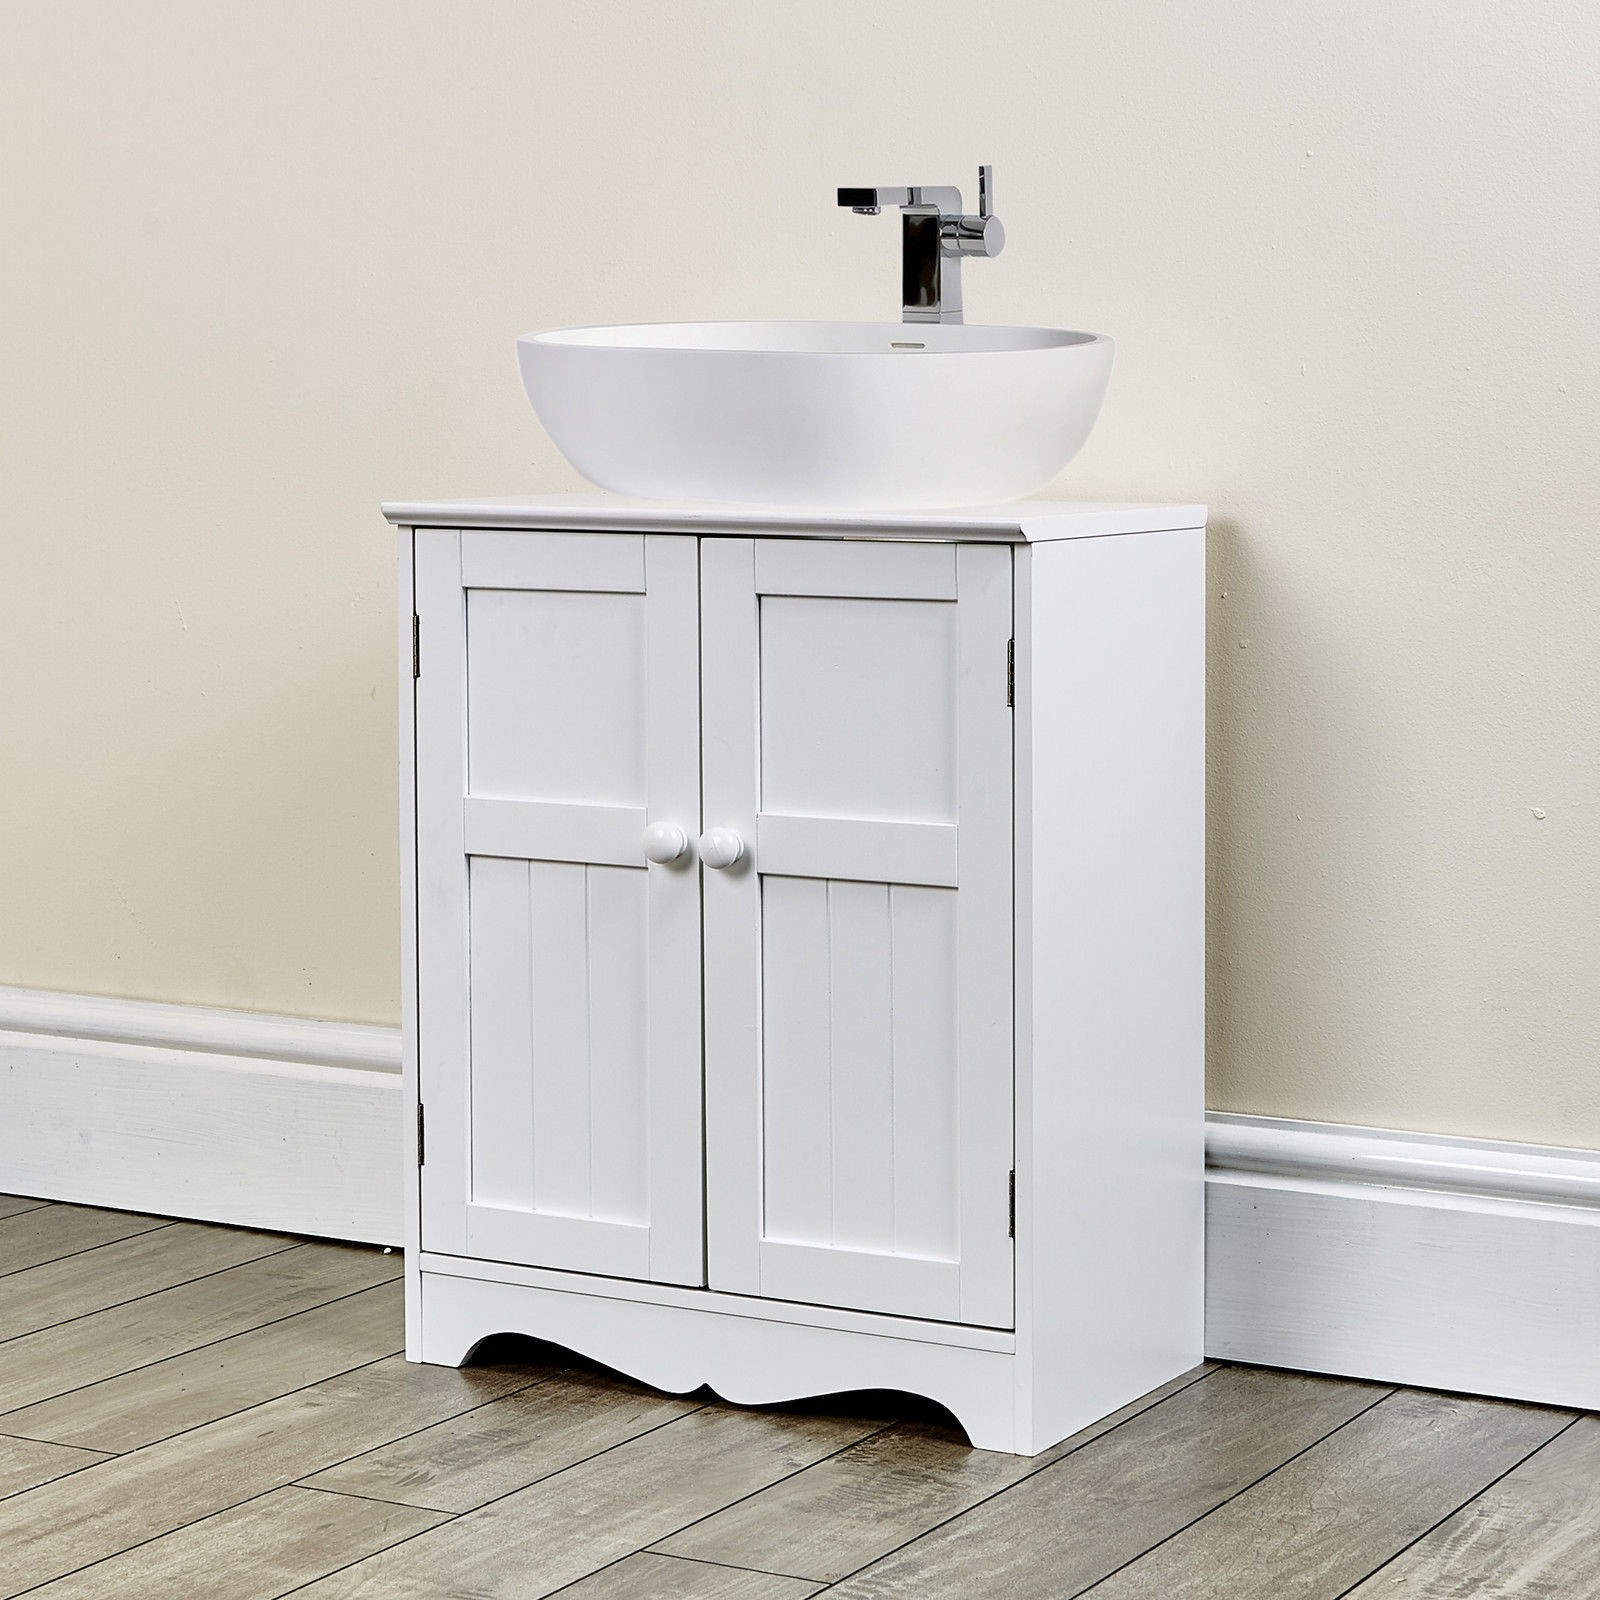 Bathroom sink dreamy person fresh under sink bathroom storage for Toilet sink cabinet